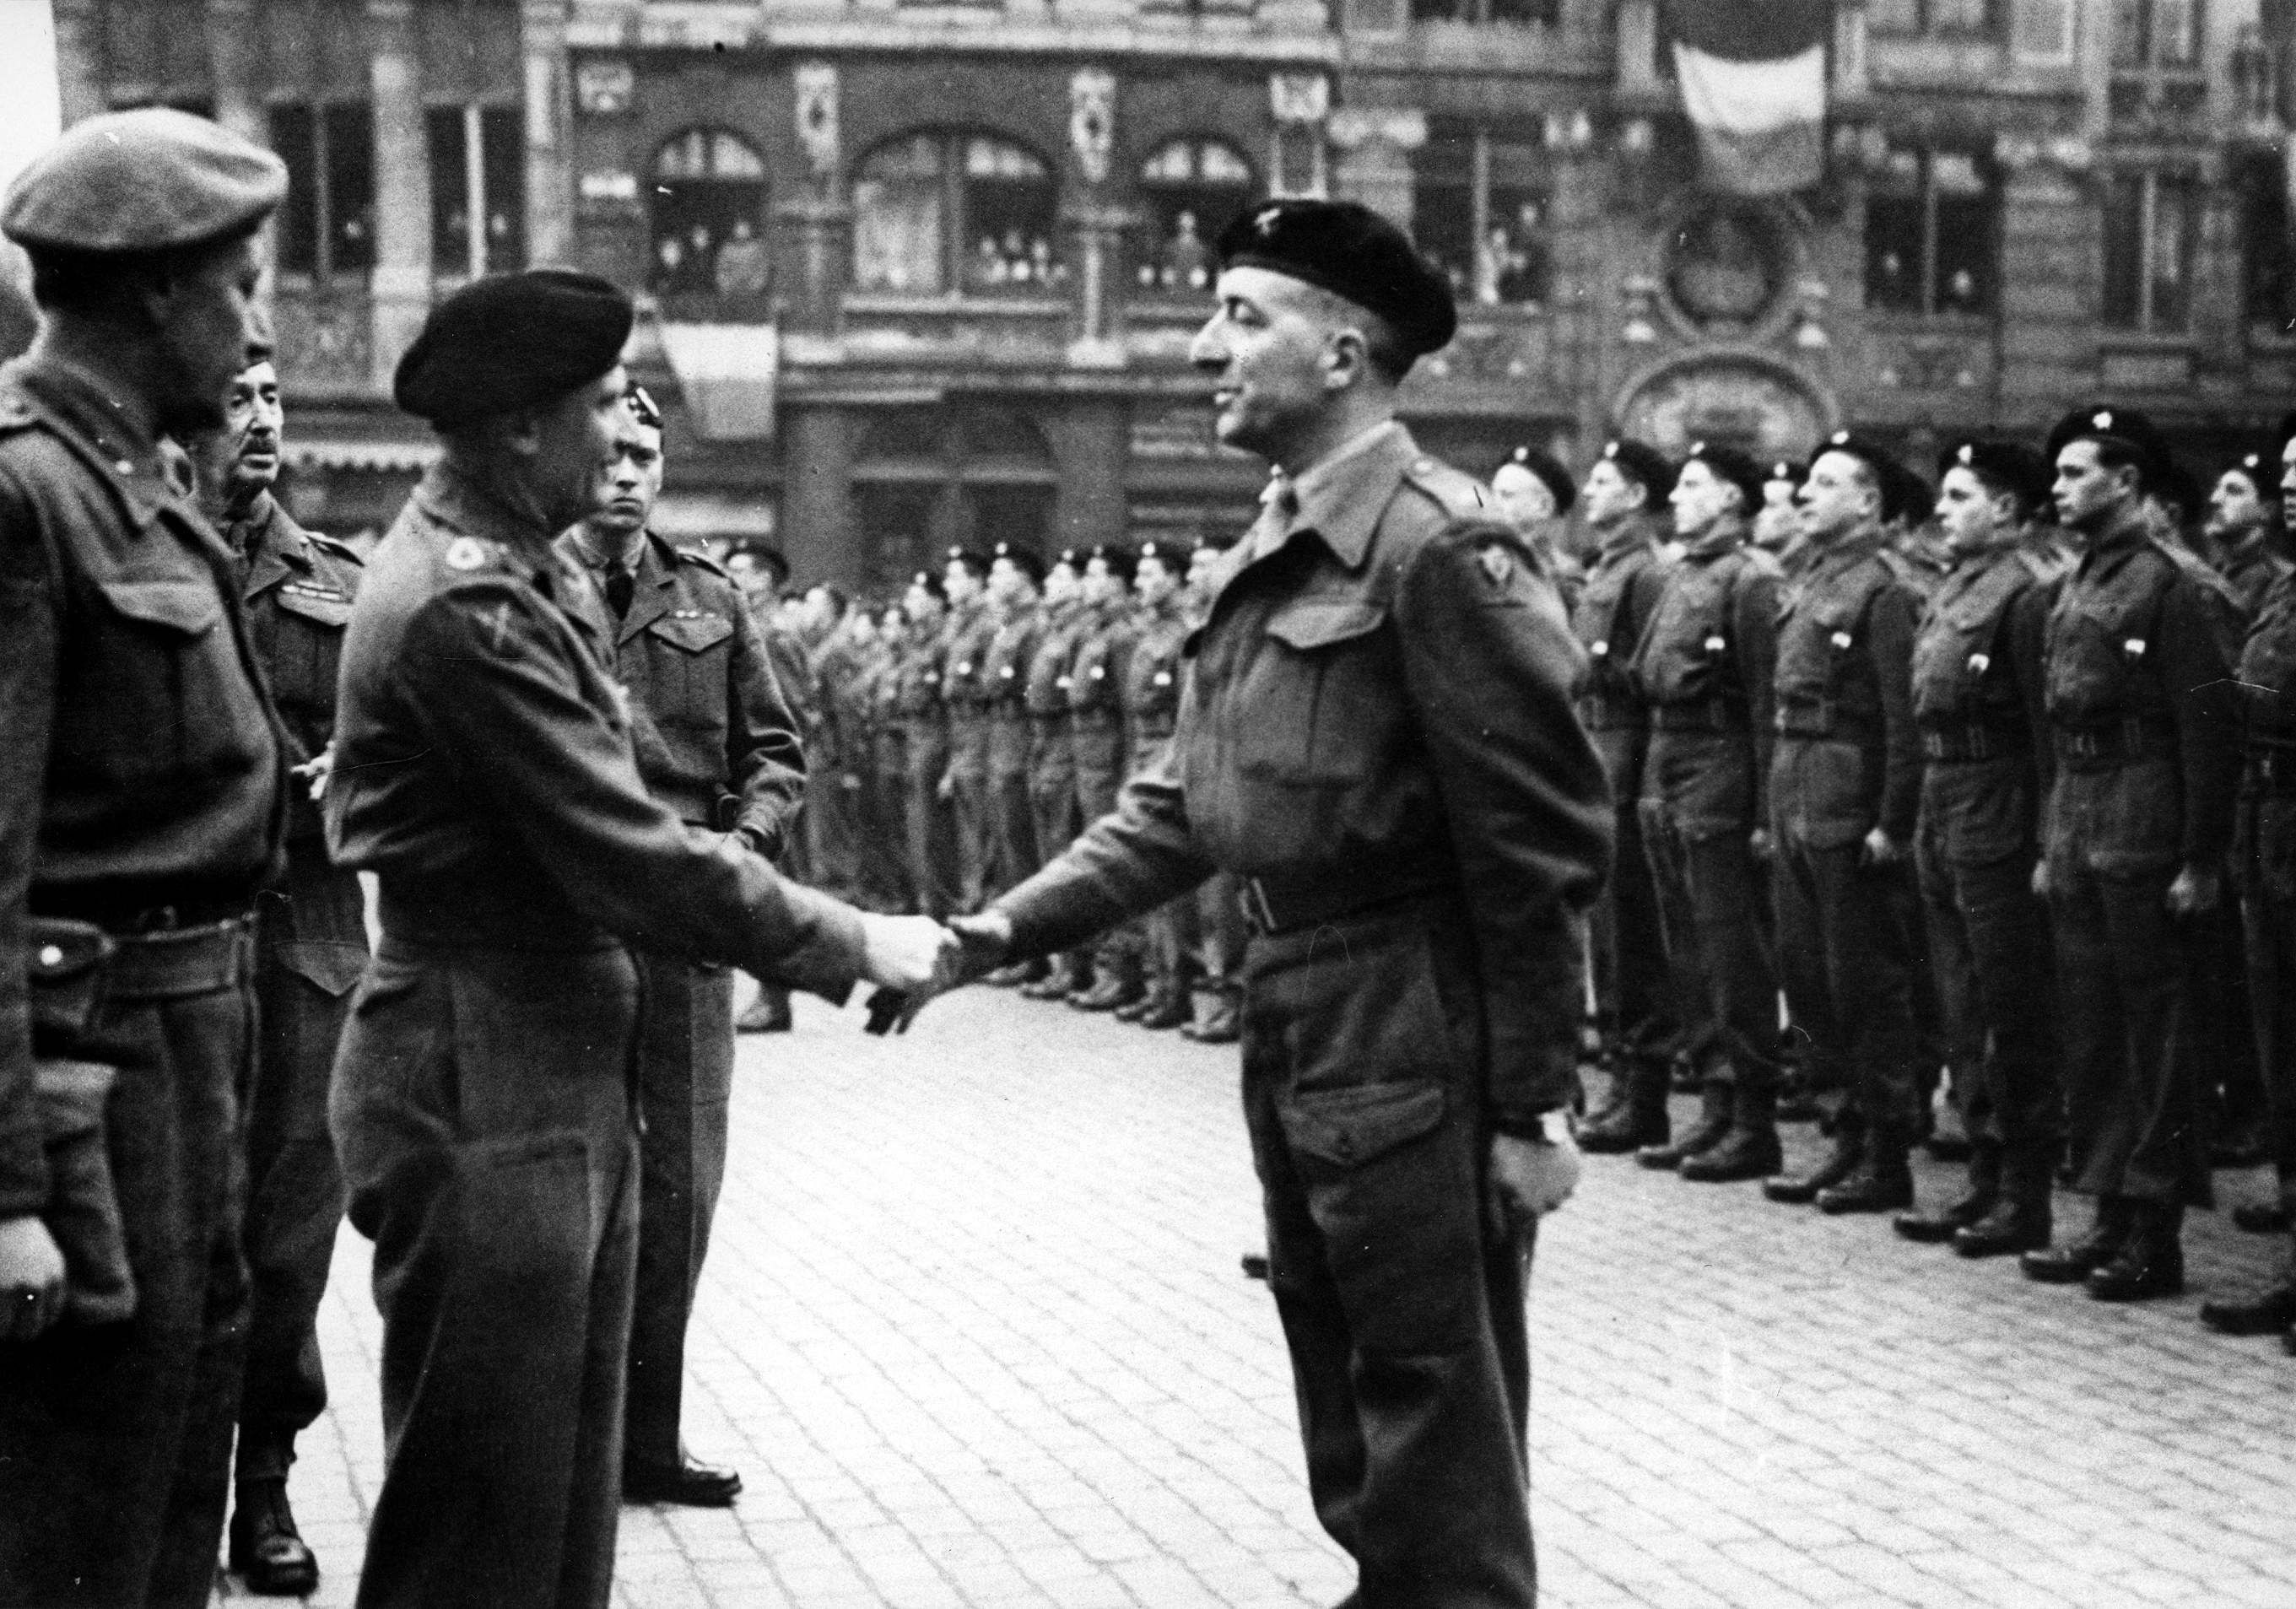 Marshal Bernard Montgomery congratulates Colonel Jules Piron in the presence of the Brigade reunited on the 'Grand Place' of Brussels, on 10 March 1945, CegeSoma/SA, photo n° 26.537.